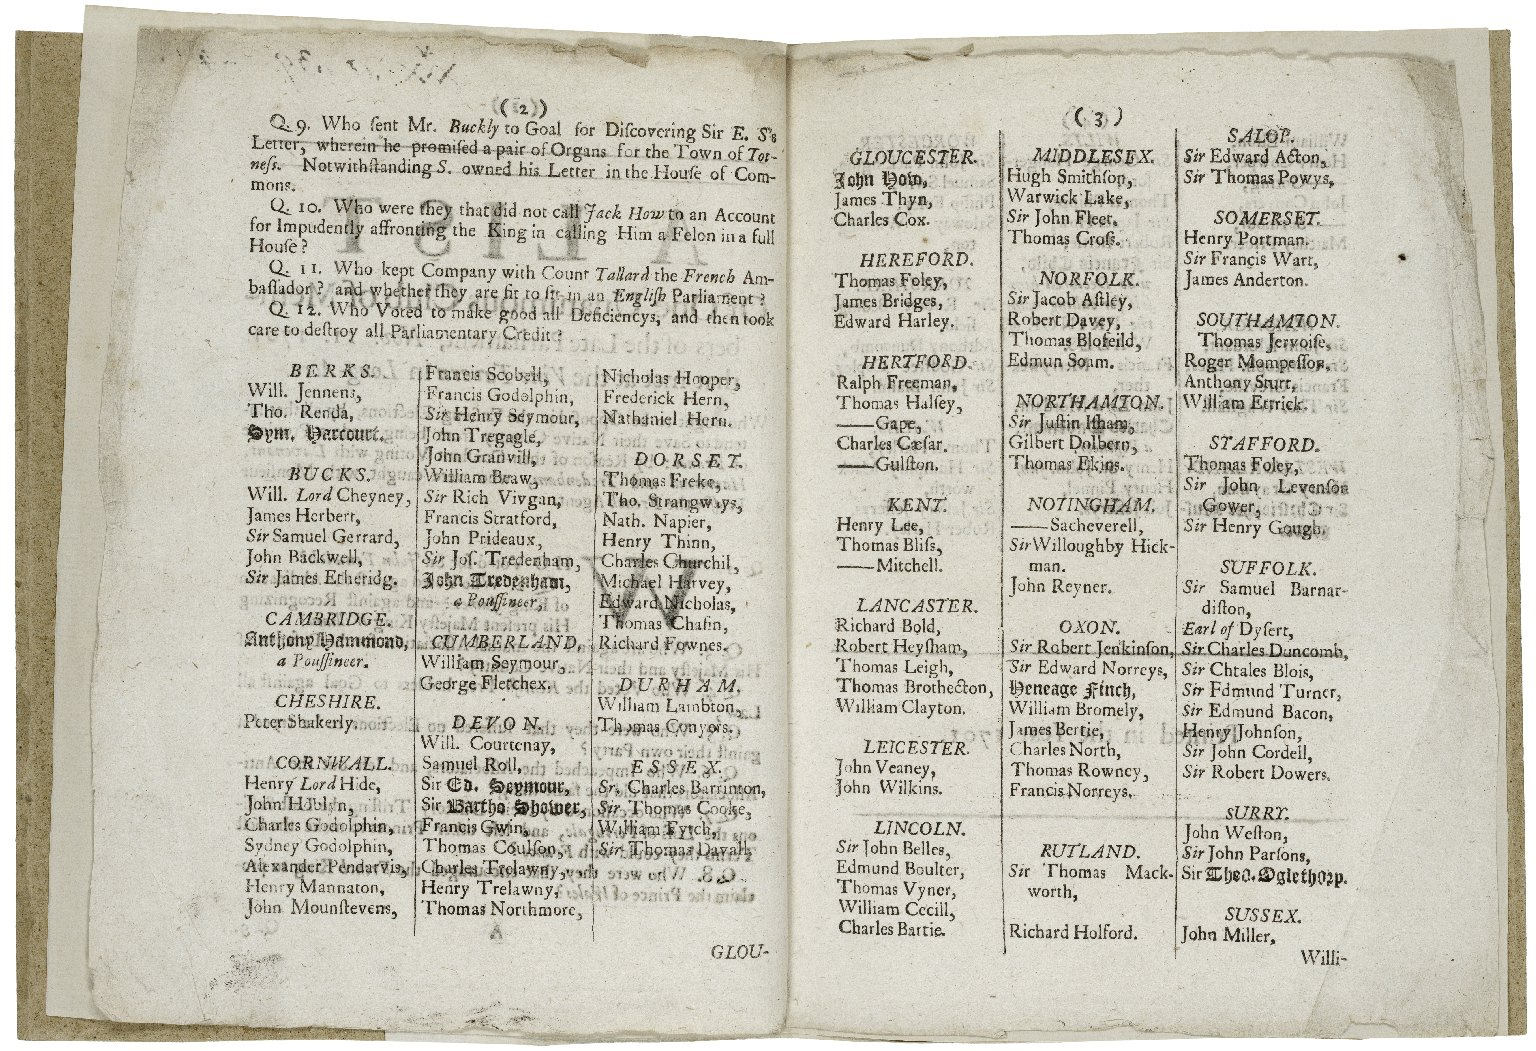 A list of one unanimous club of members of the late Parliament, Nov. 11. 1701. that met at the Vine-Tavern in Long-Acre...